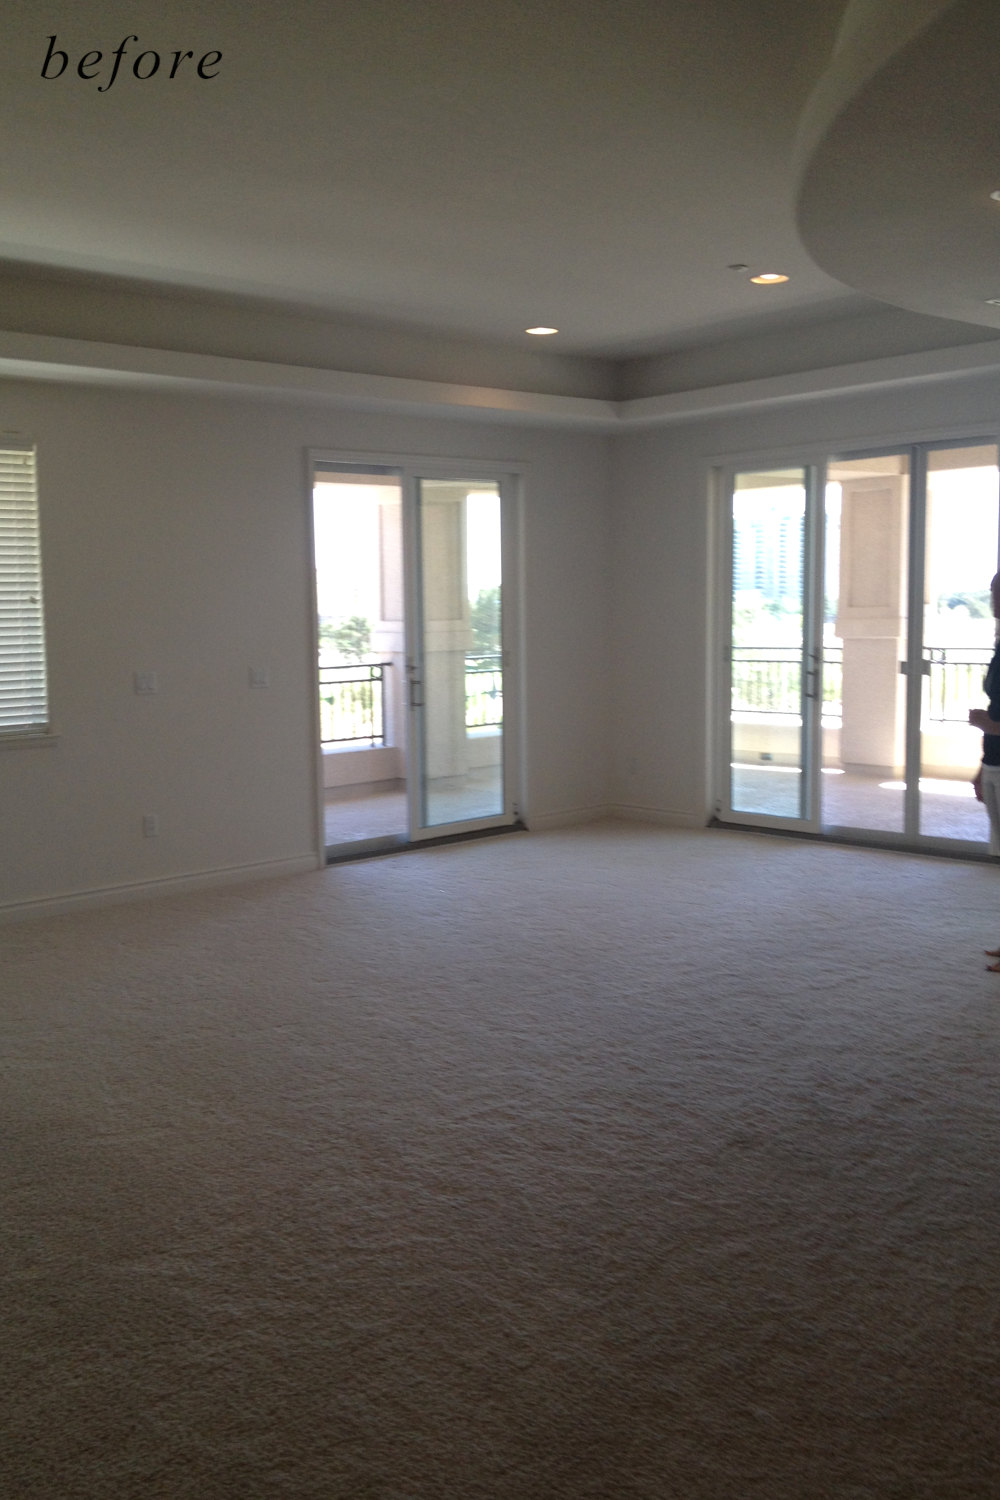 Before remodel image: basic and dull home dining room area with no furniture.